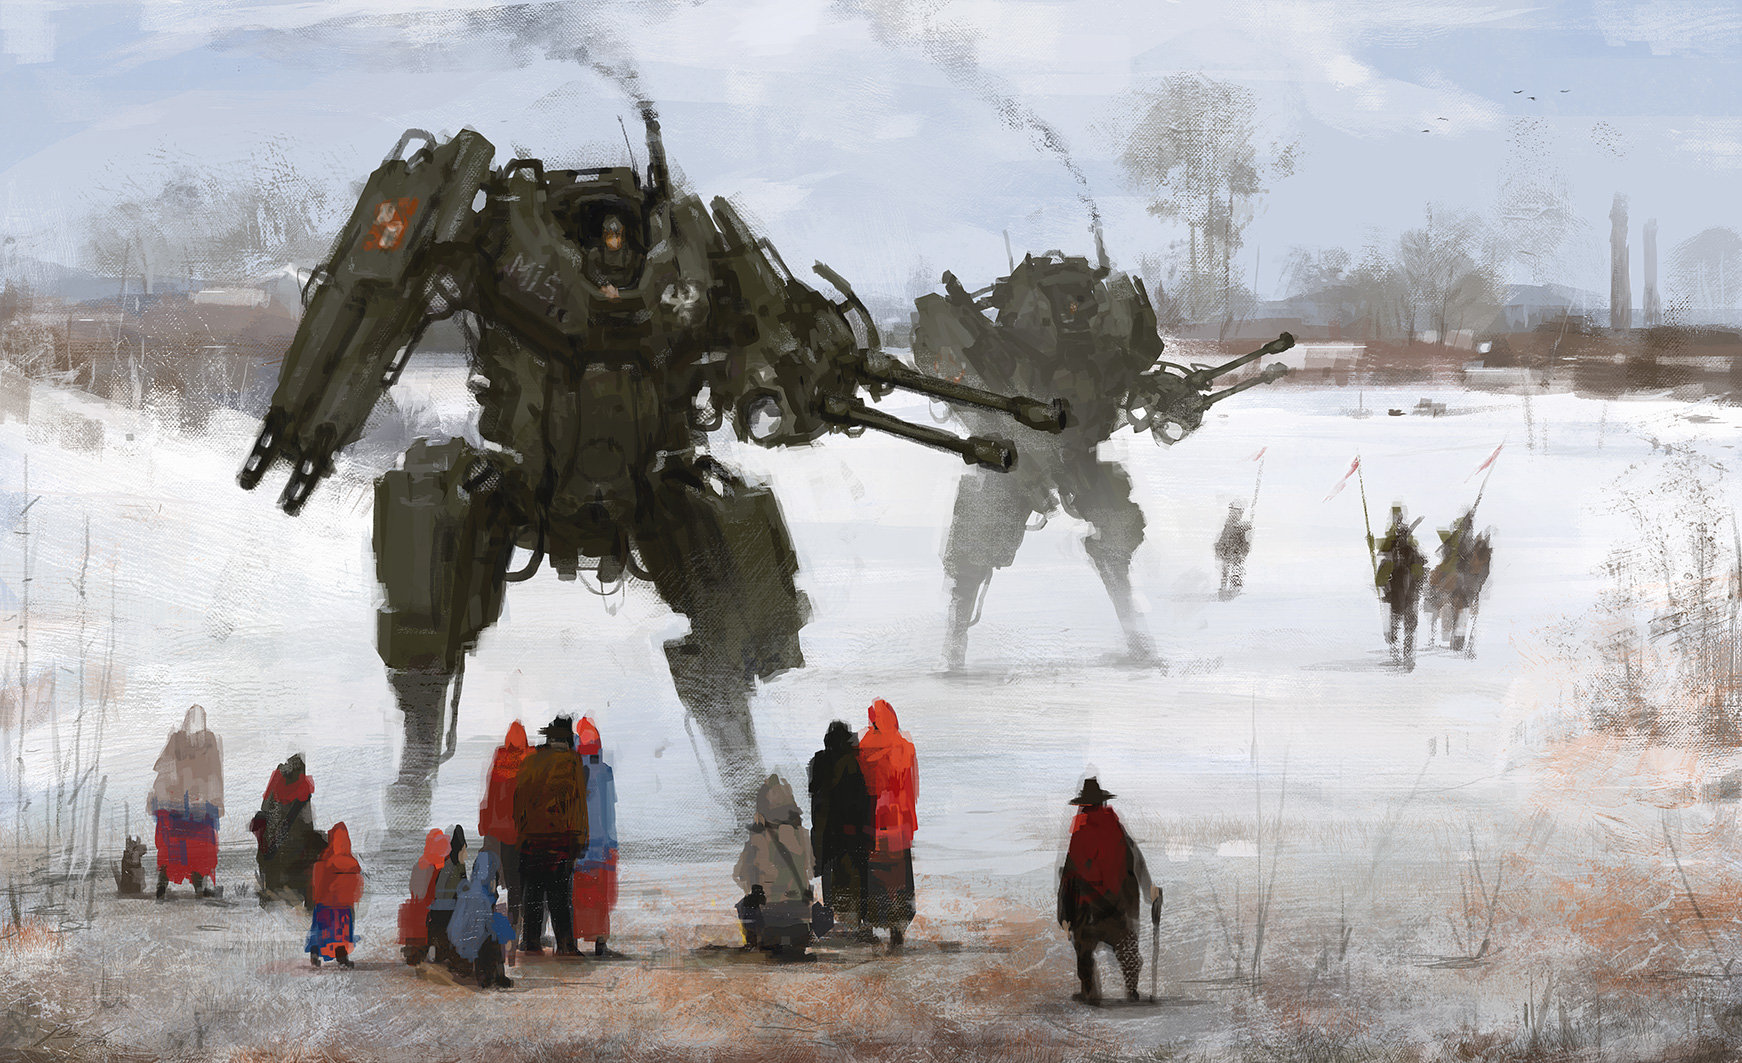 jakub-rozalski-1920-winter01-small